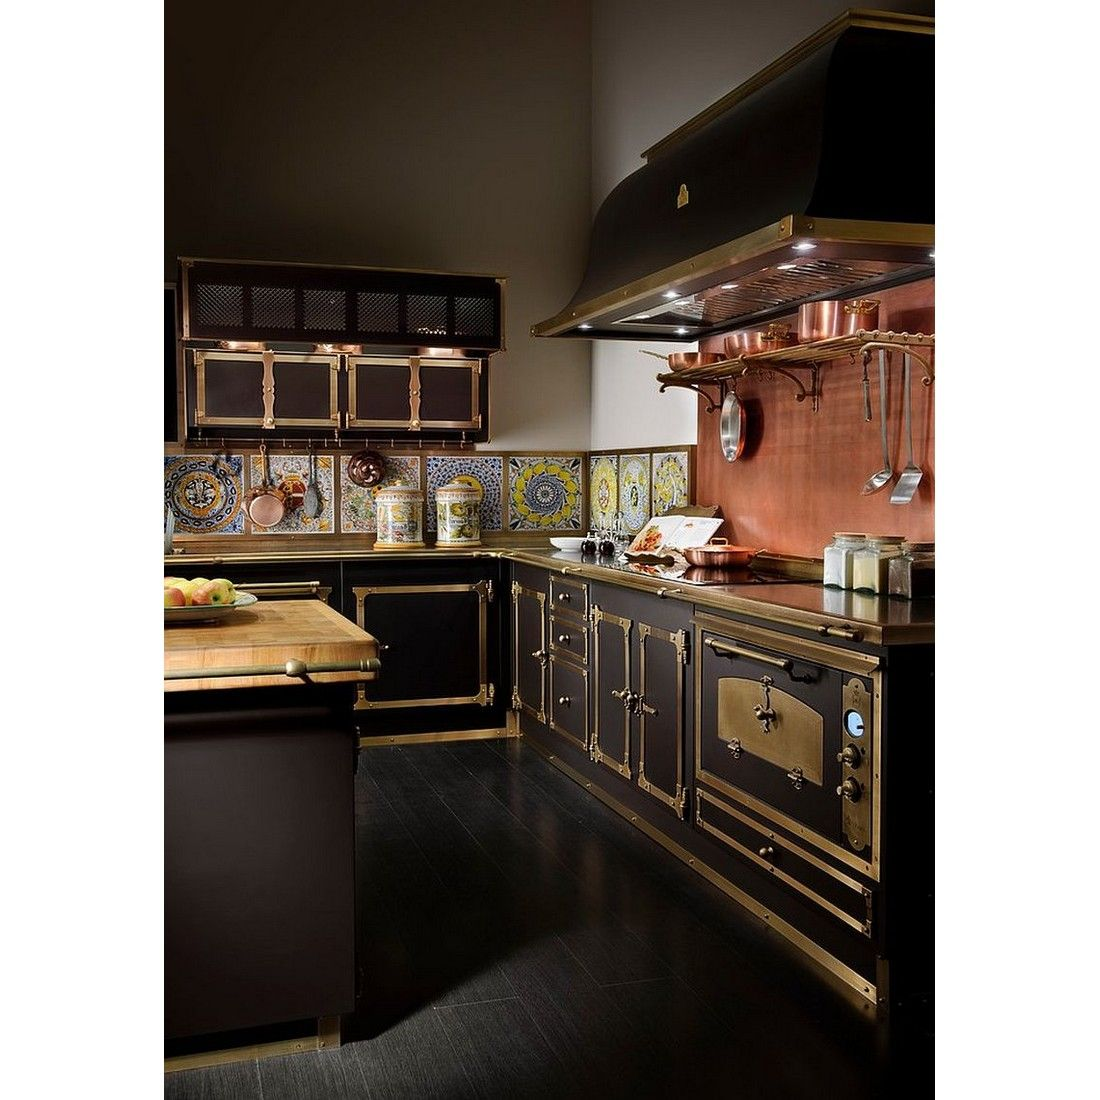 Victorian Kitchen With Burnished Brass And Copper Finishing Pretty Or Nay Rumahkukitchen Steampunk Interior Design Interior Design Kitchen Steampunk Kitchen